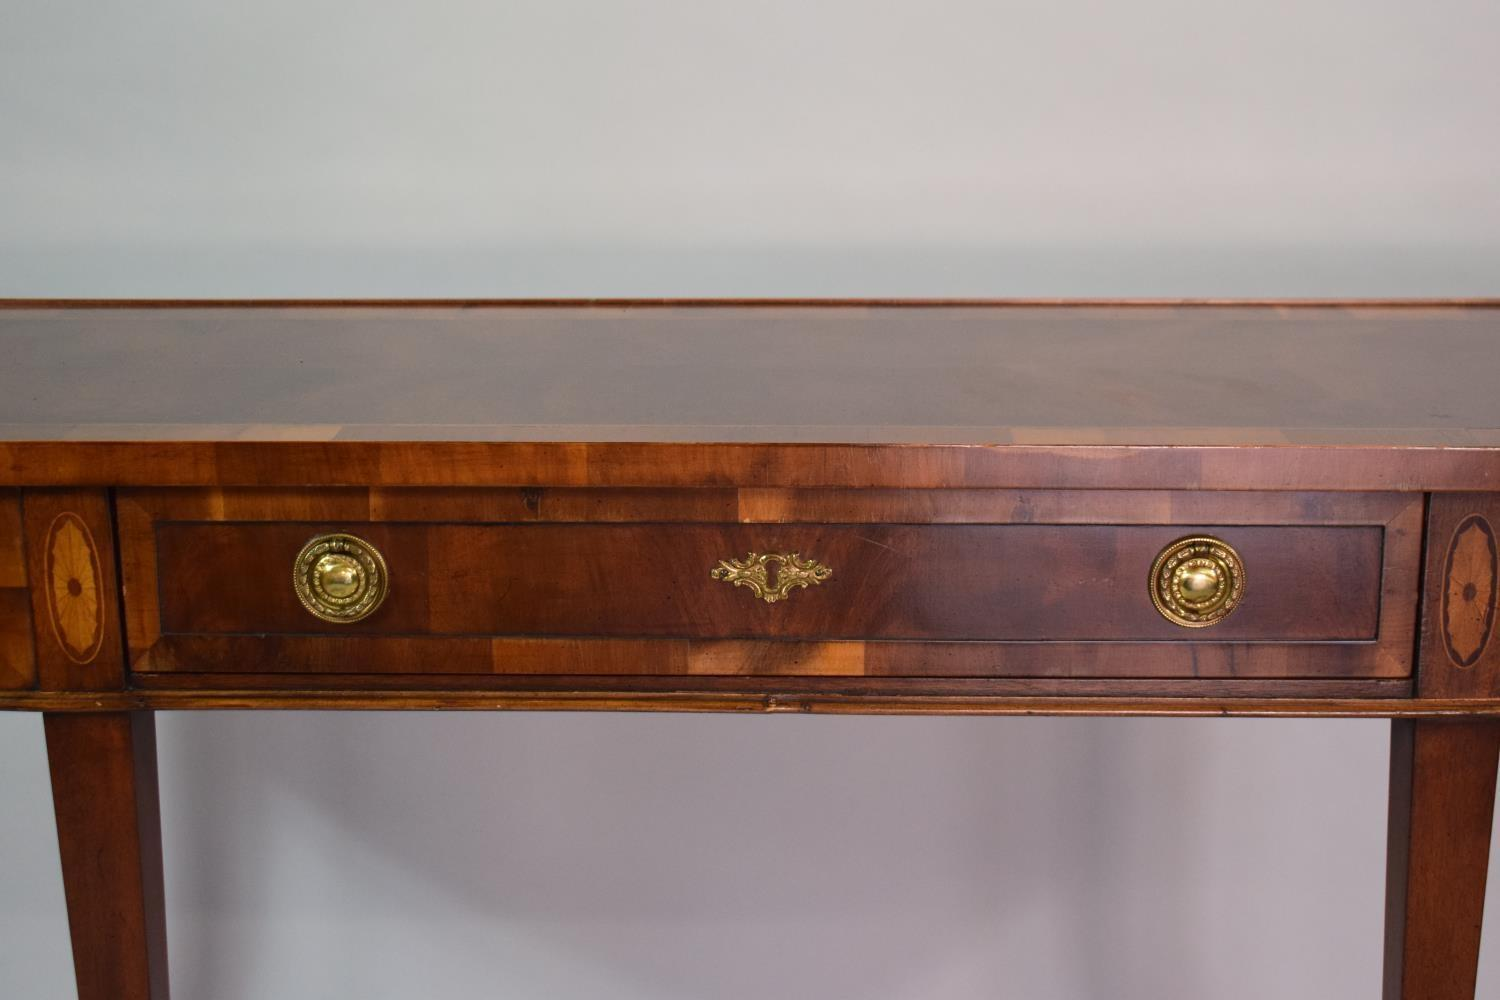 Lot 1 - A Reproduction Inlaid Mahogany Bowfront Table set on Square Tapering Legs with Central Long